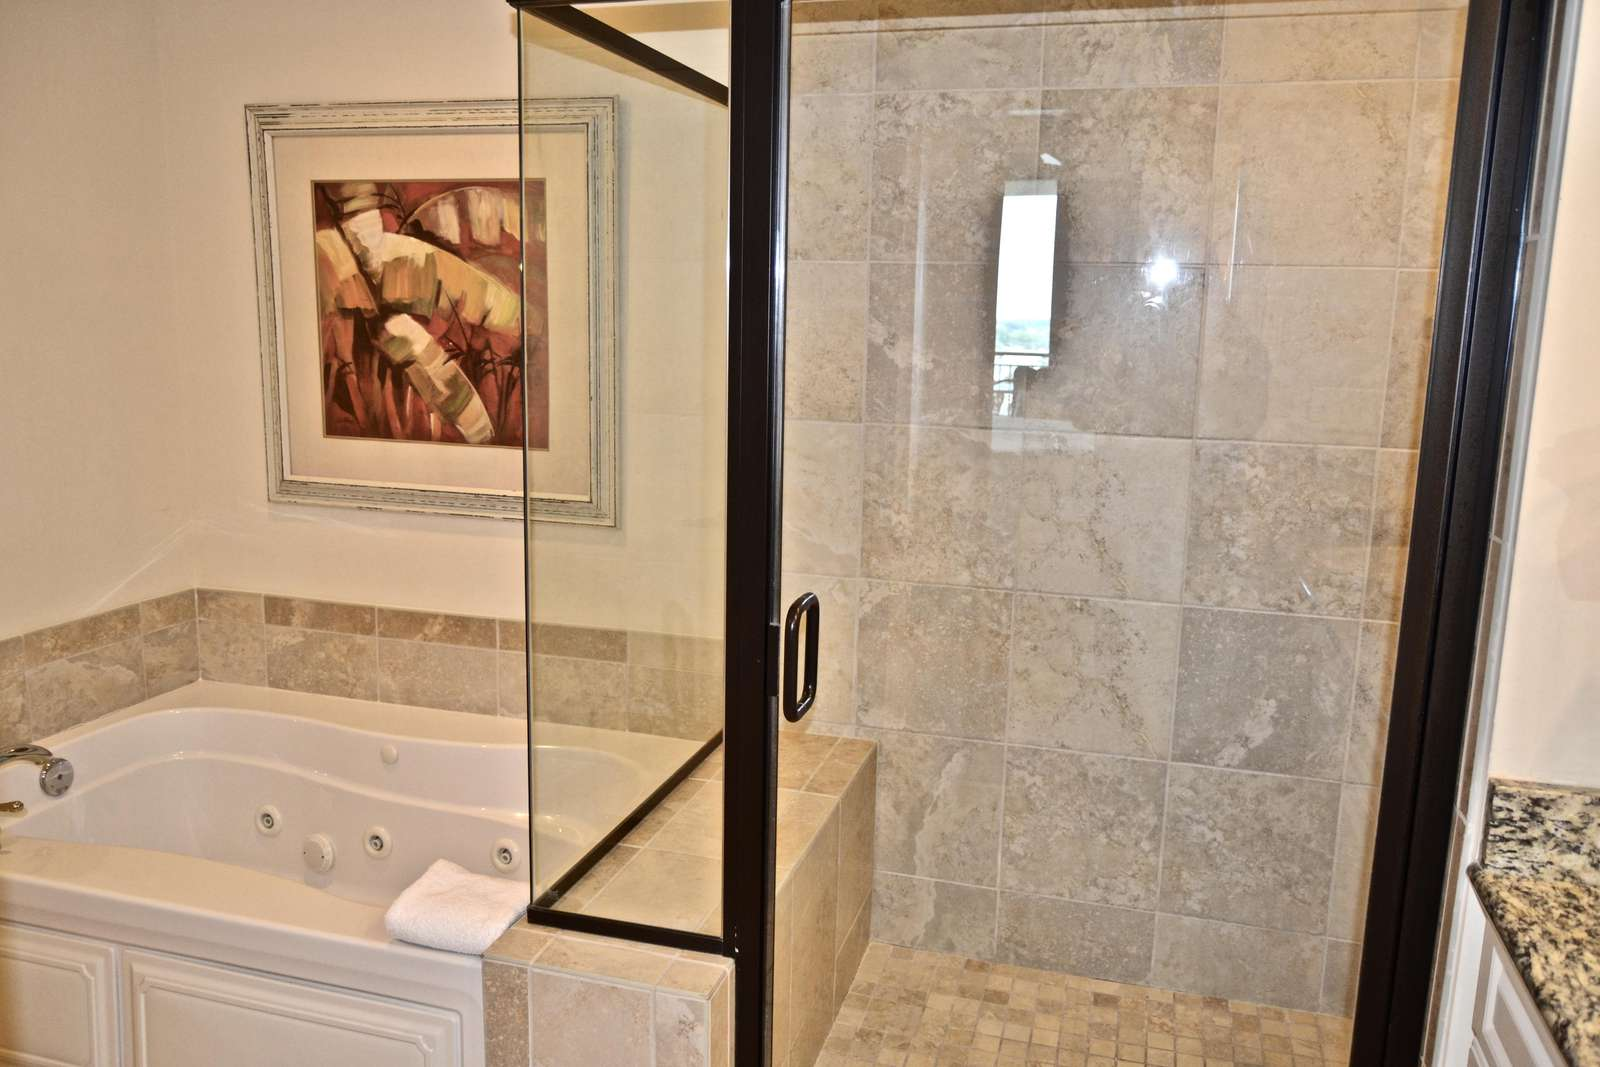 Jetted tub with walk-in ceramic tile shower, with seat